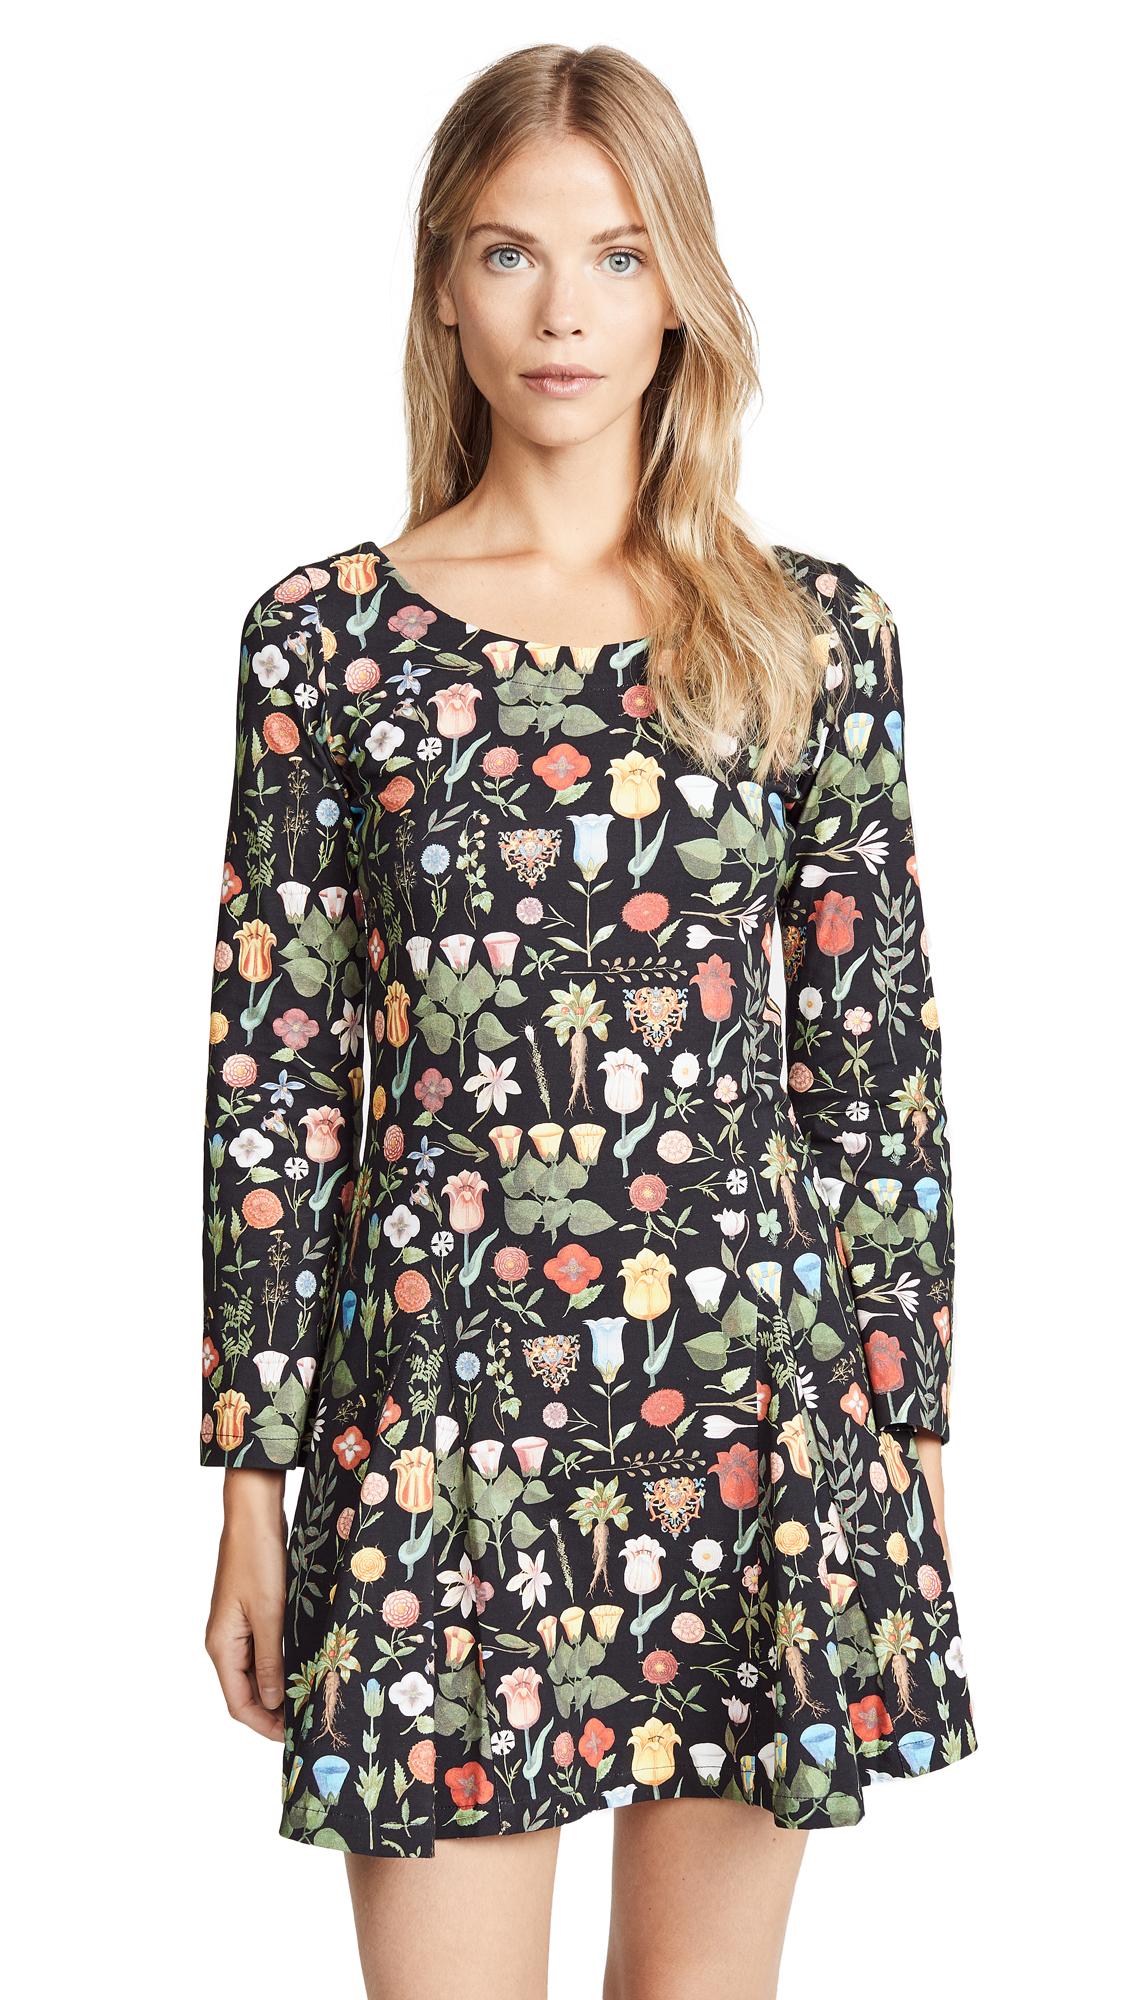 SAMANTHA PLEET Fleur Dress in Black Blossom